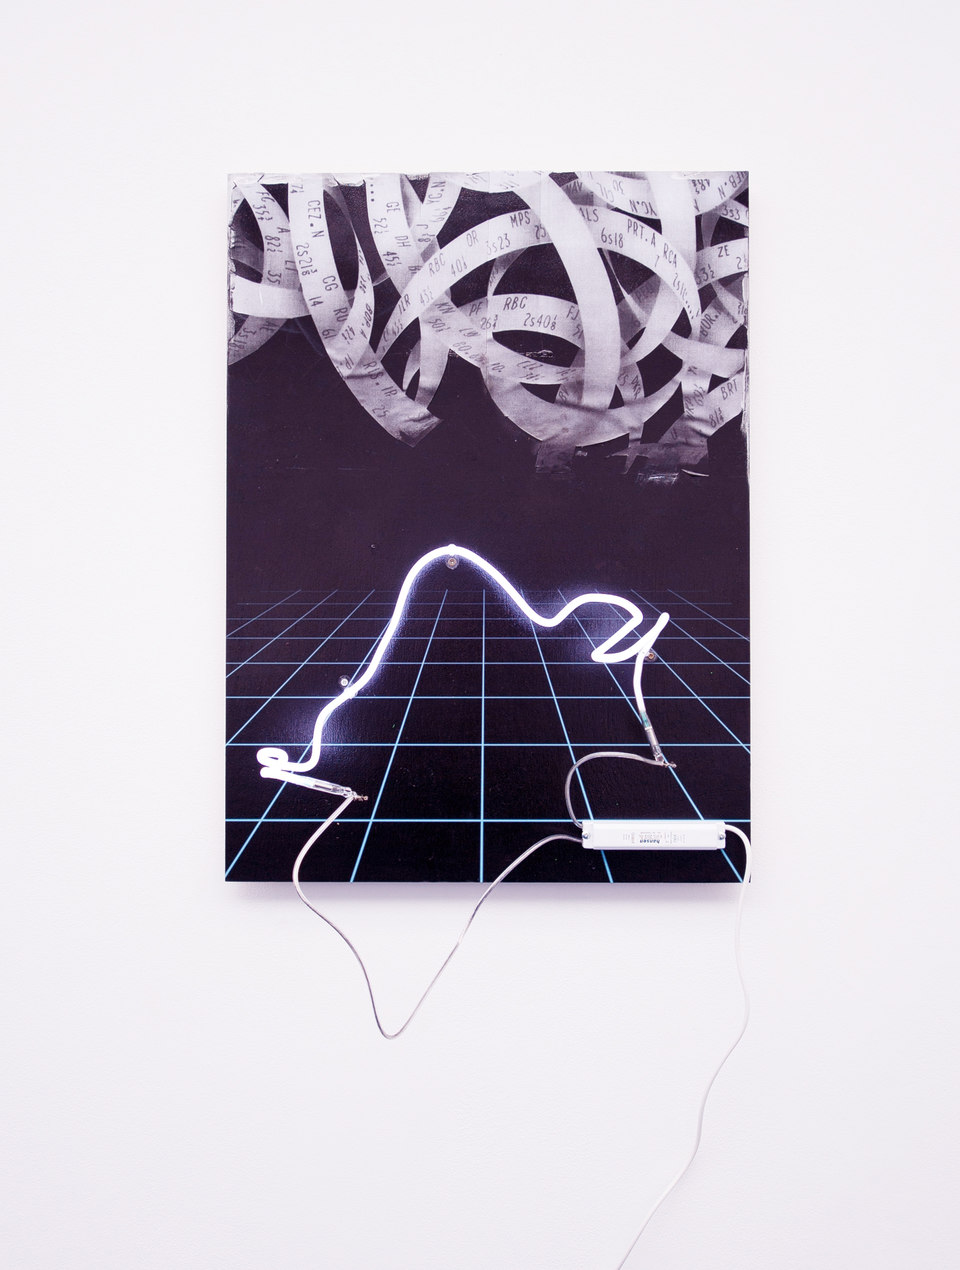 Florian Auer, Not Yet Titled (Ticker Tape), 2013, print on black board, paper, airbrushed paint, neon, transformer, (80 x 59 x 23 cm)